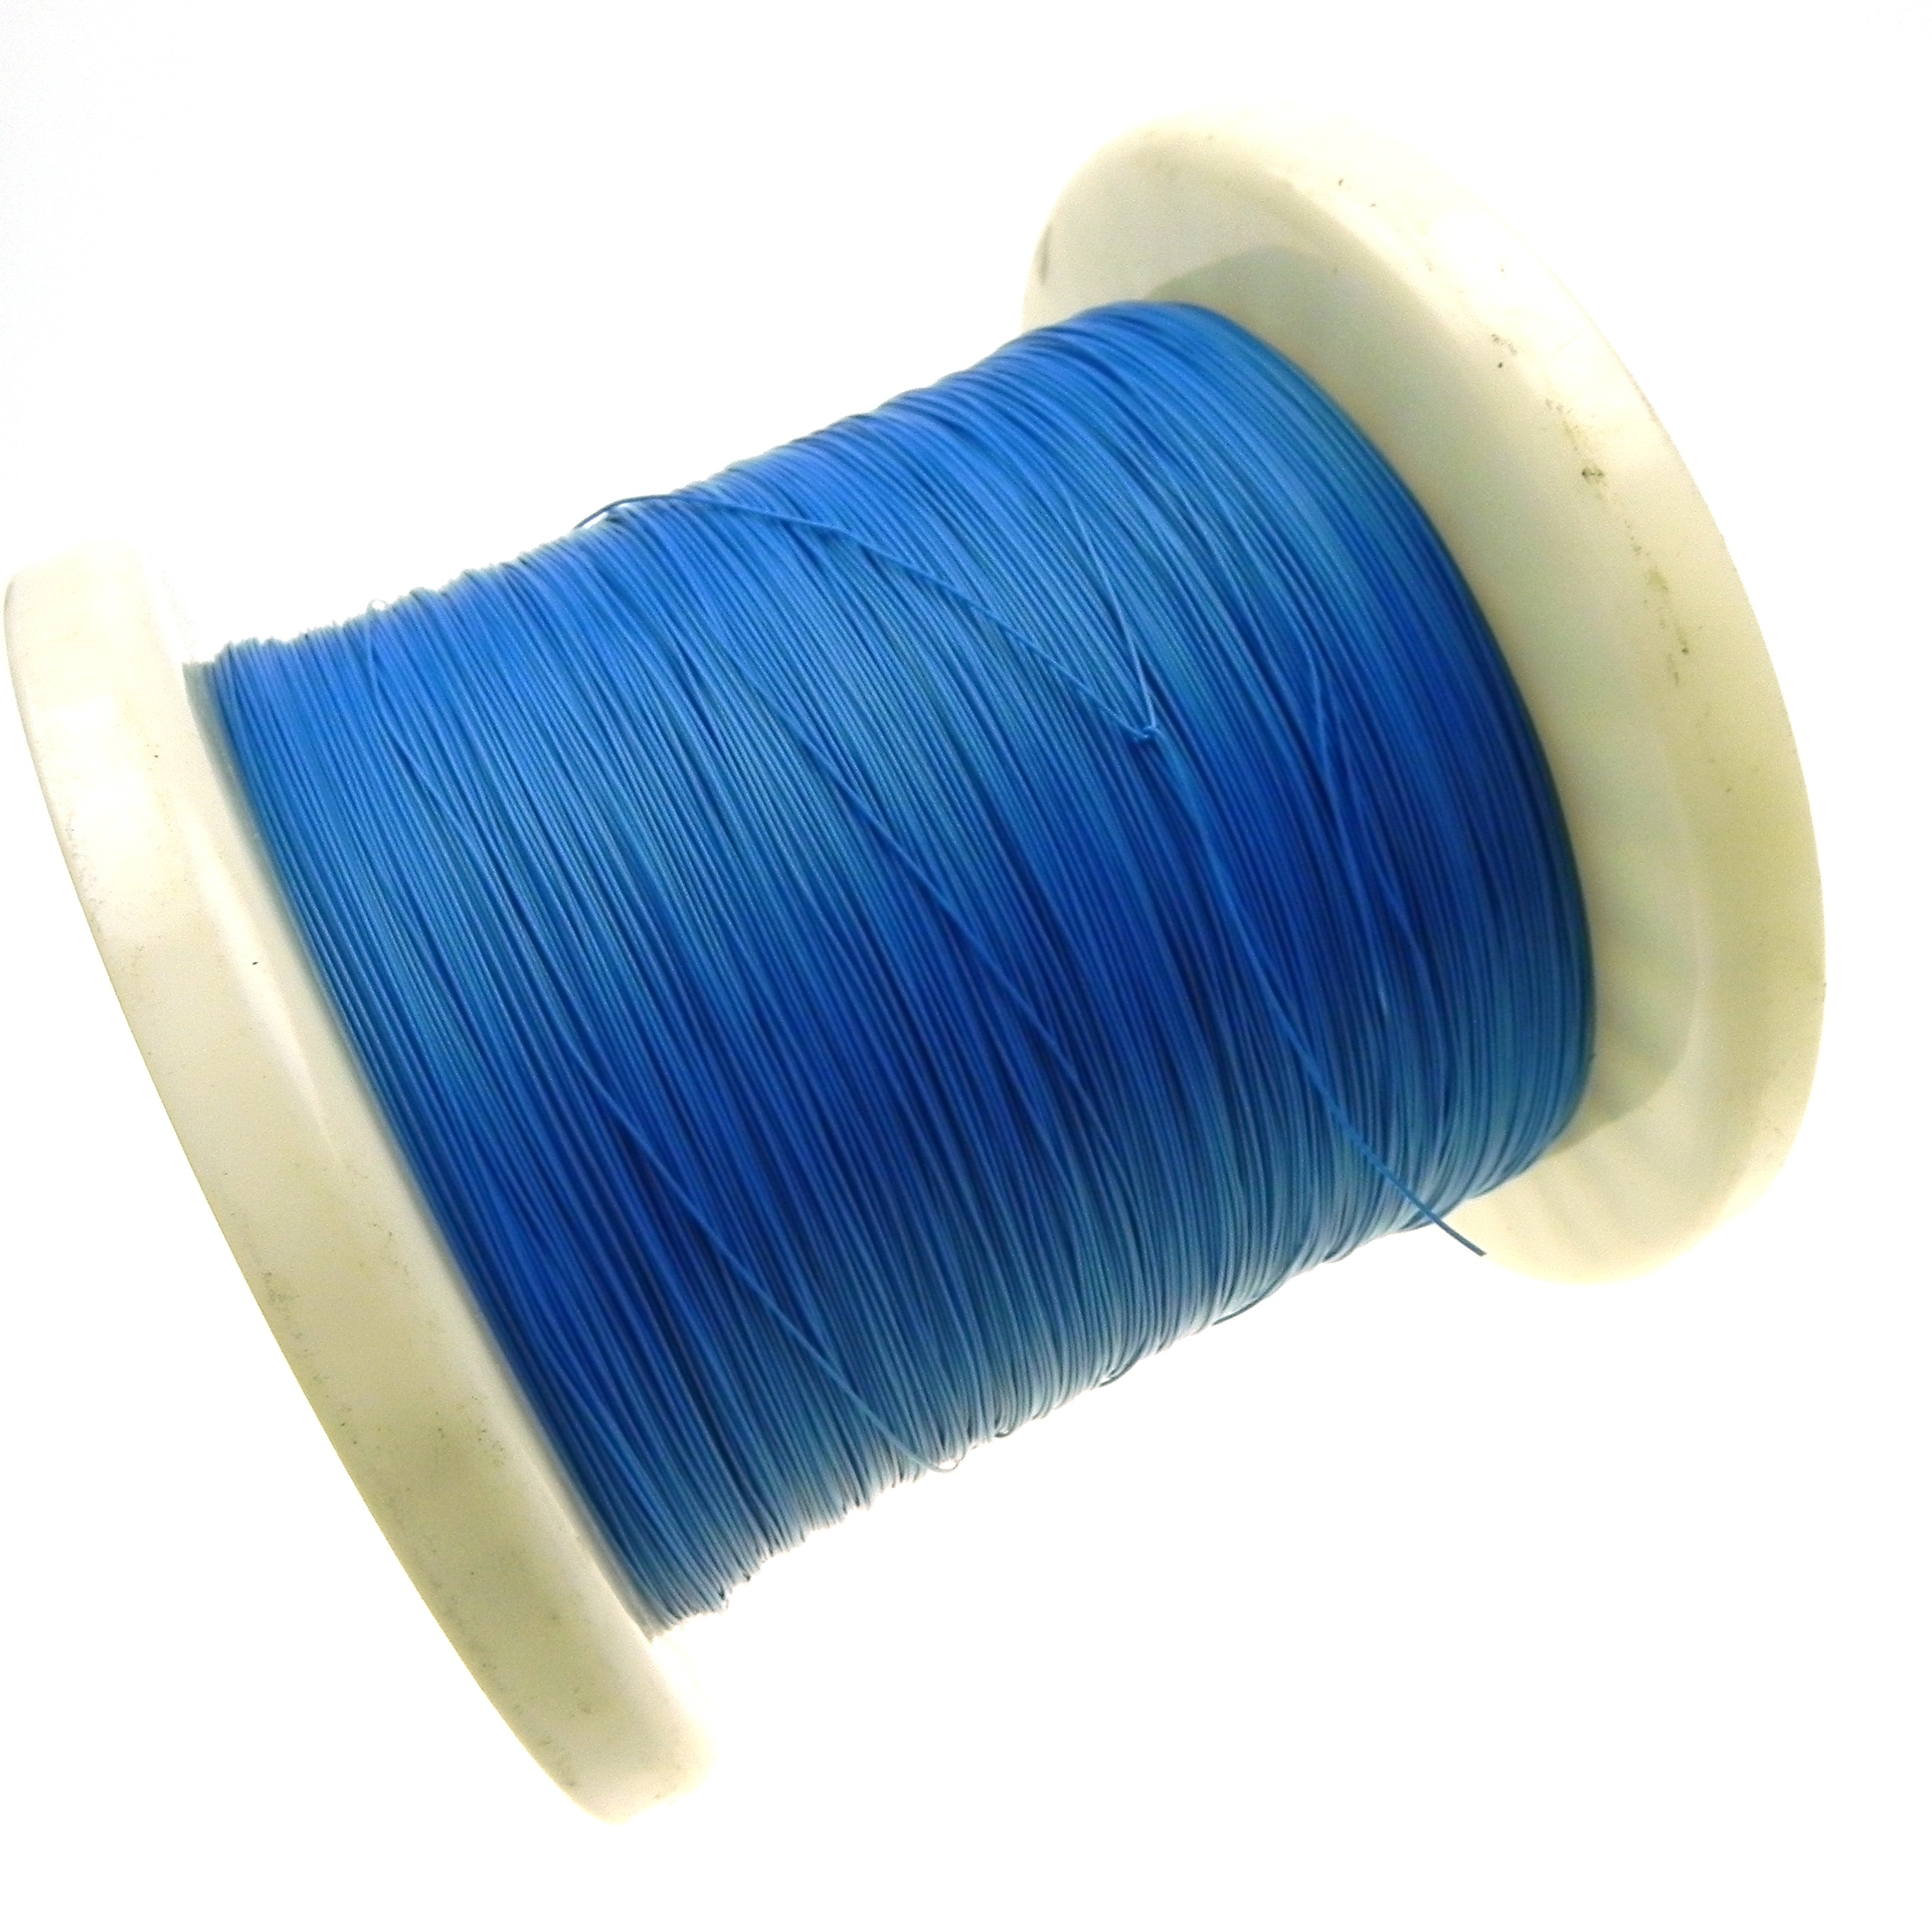 0.5mm teflo high temperature electric wires cables <strong>copper</strong> blue color